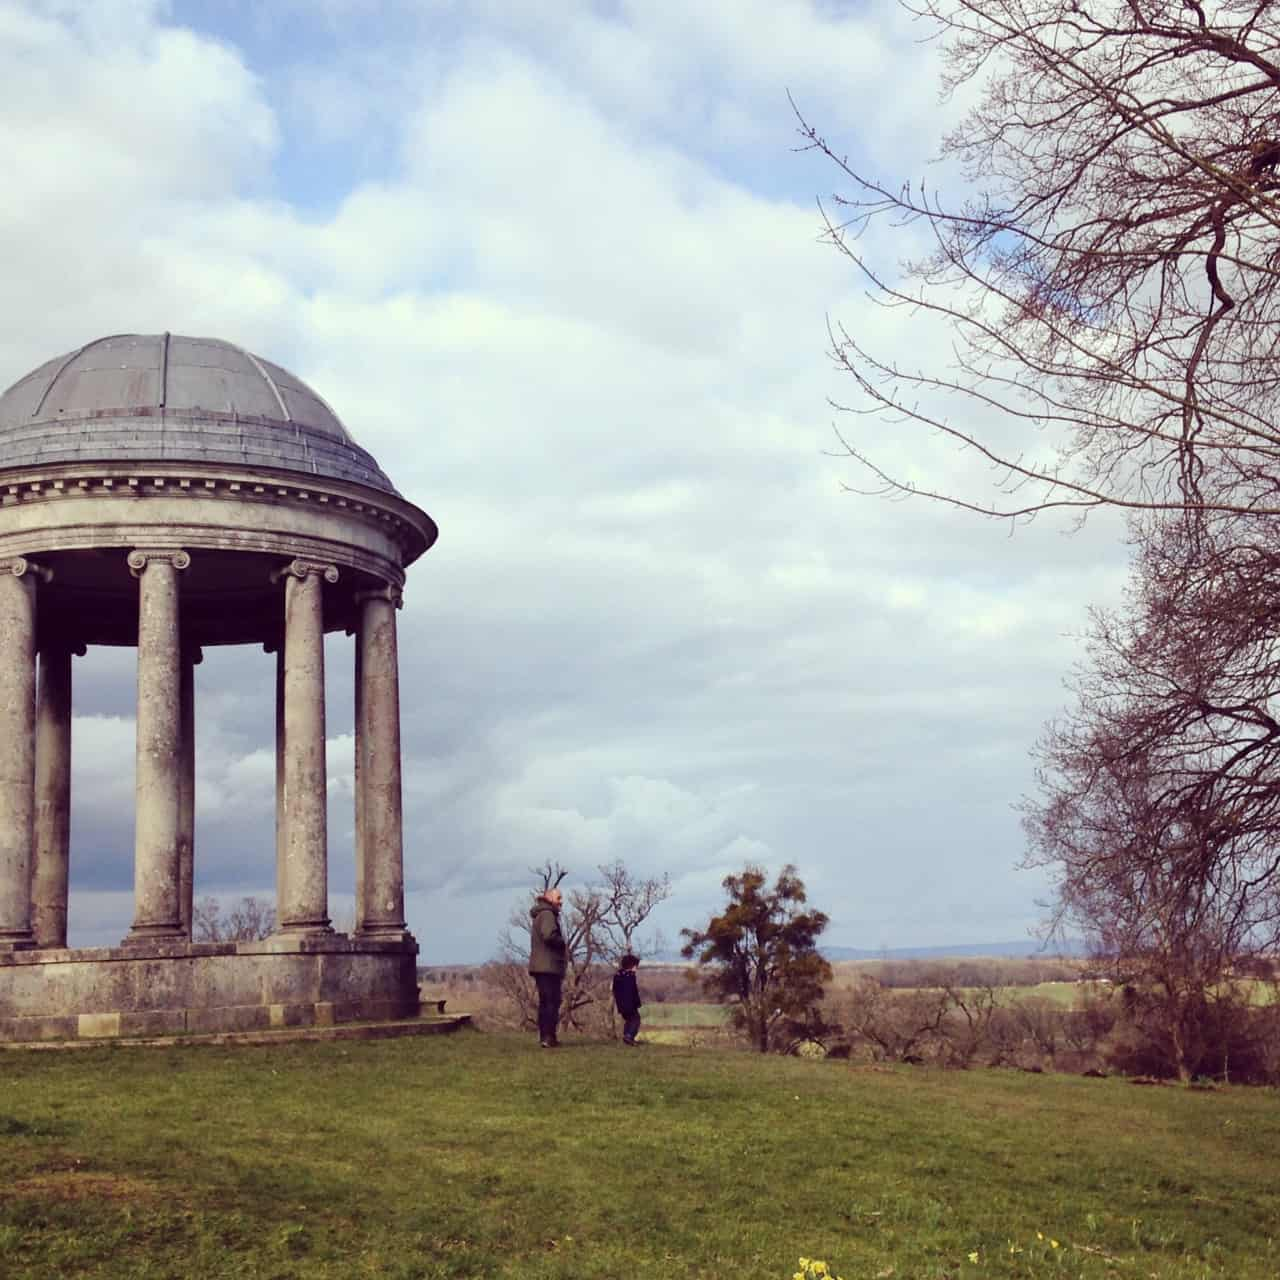 A Family Day Out at National Trust's Petworth House and Park